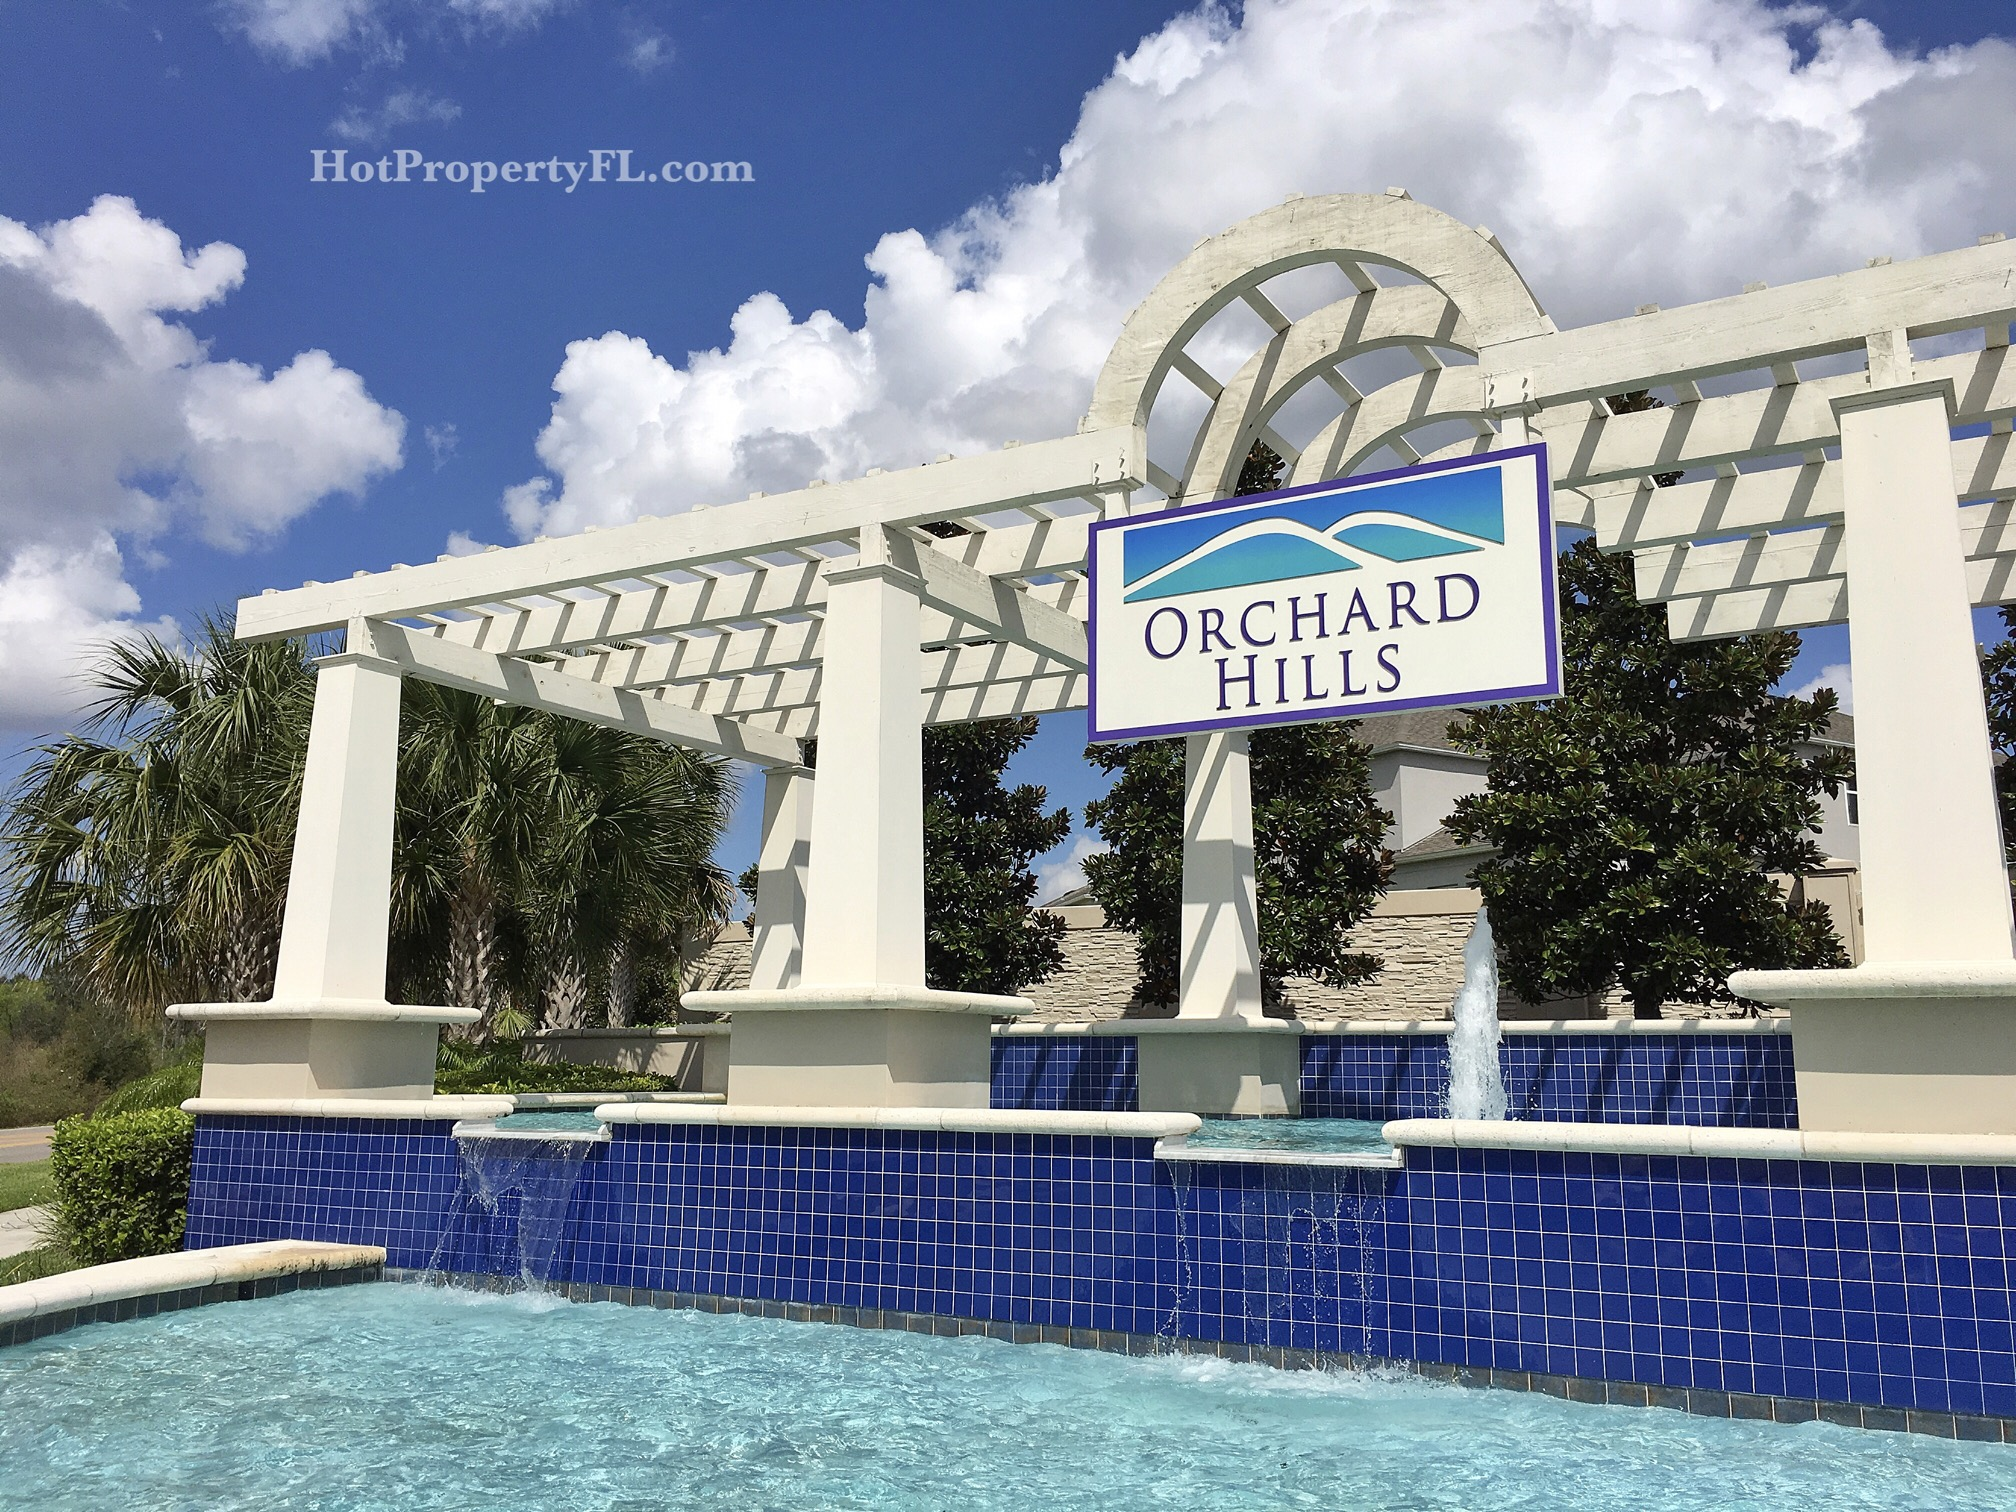 Orchard hills homes for sale in orchard hills winter garden fl 34787 for Land for sale in winter garden fl